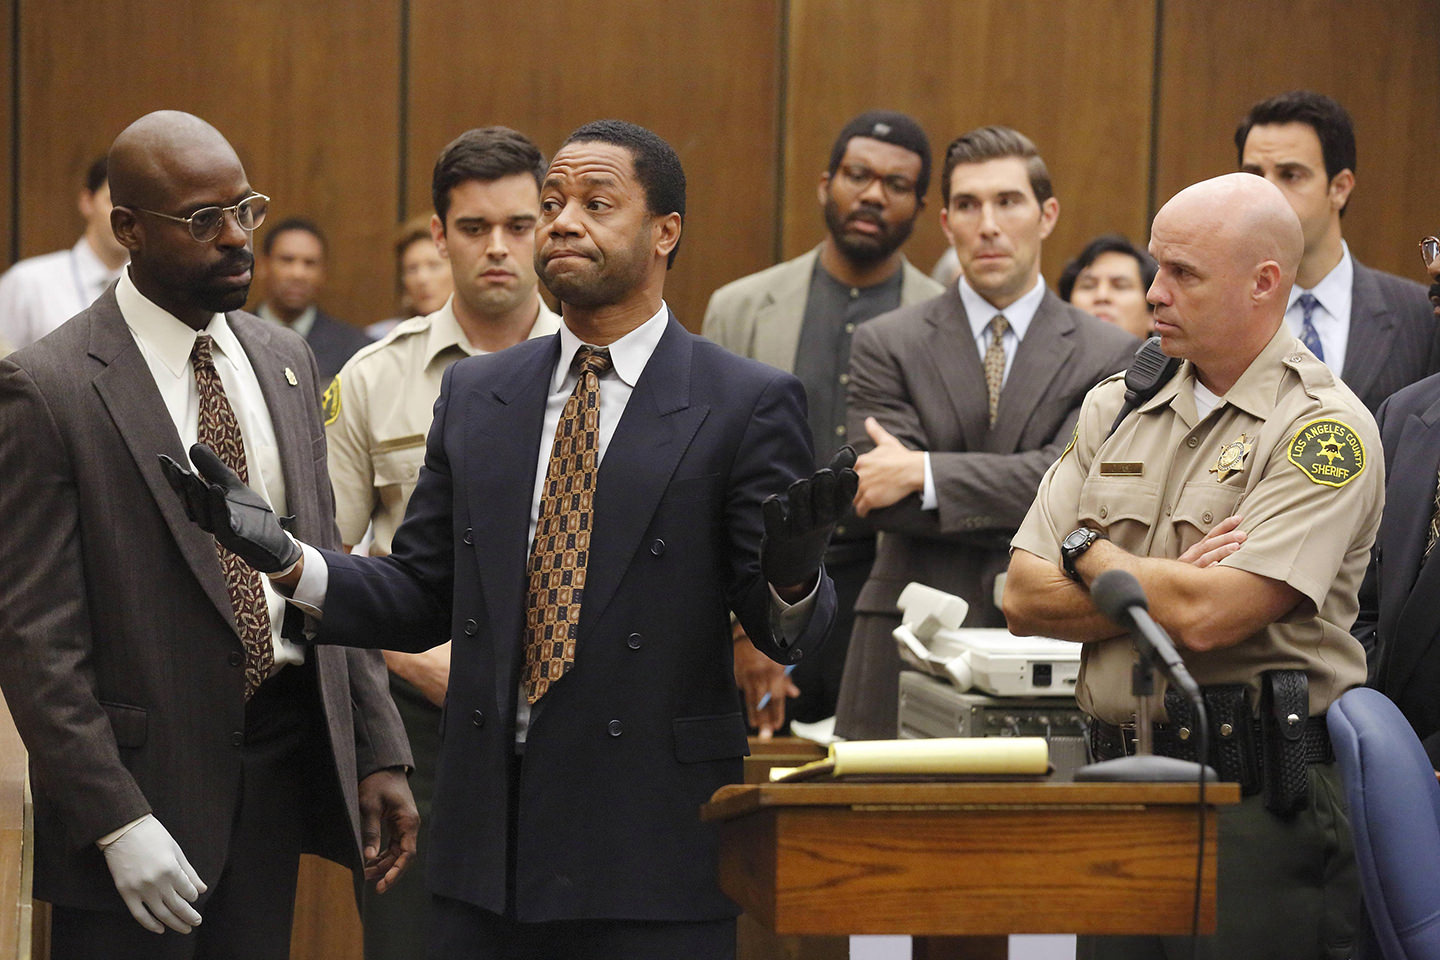 Blog-Mode-And-The-City-Lifestyle-5-petites-choses-190-american-crime-story-the-people-vs-o.j-simpson2